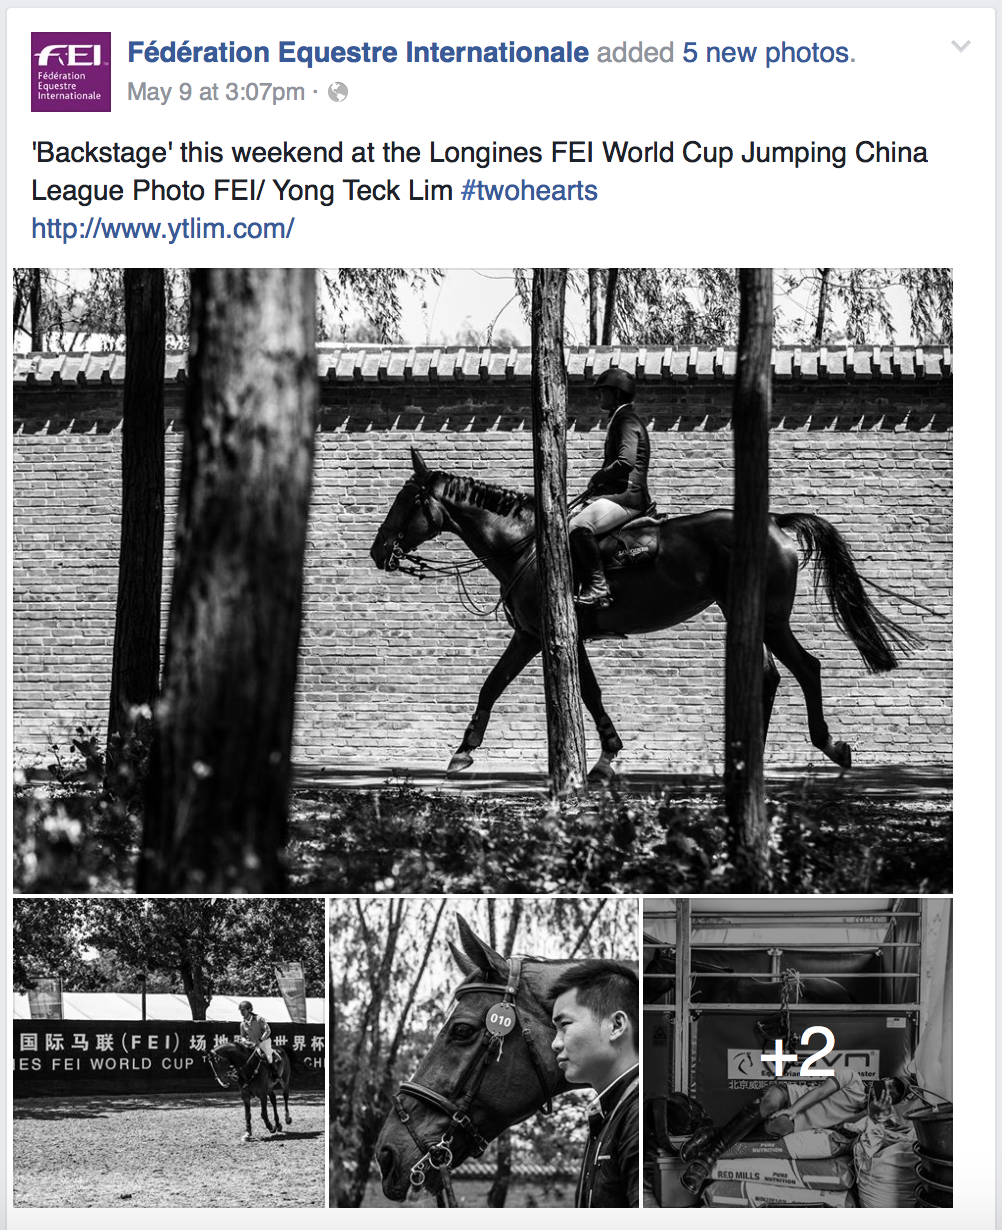 FEI World Cup Jumping - China League for Fédération Equestre Internationale (www.fei.org)